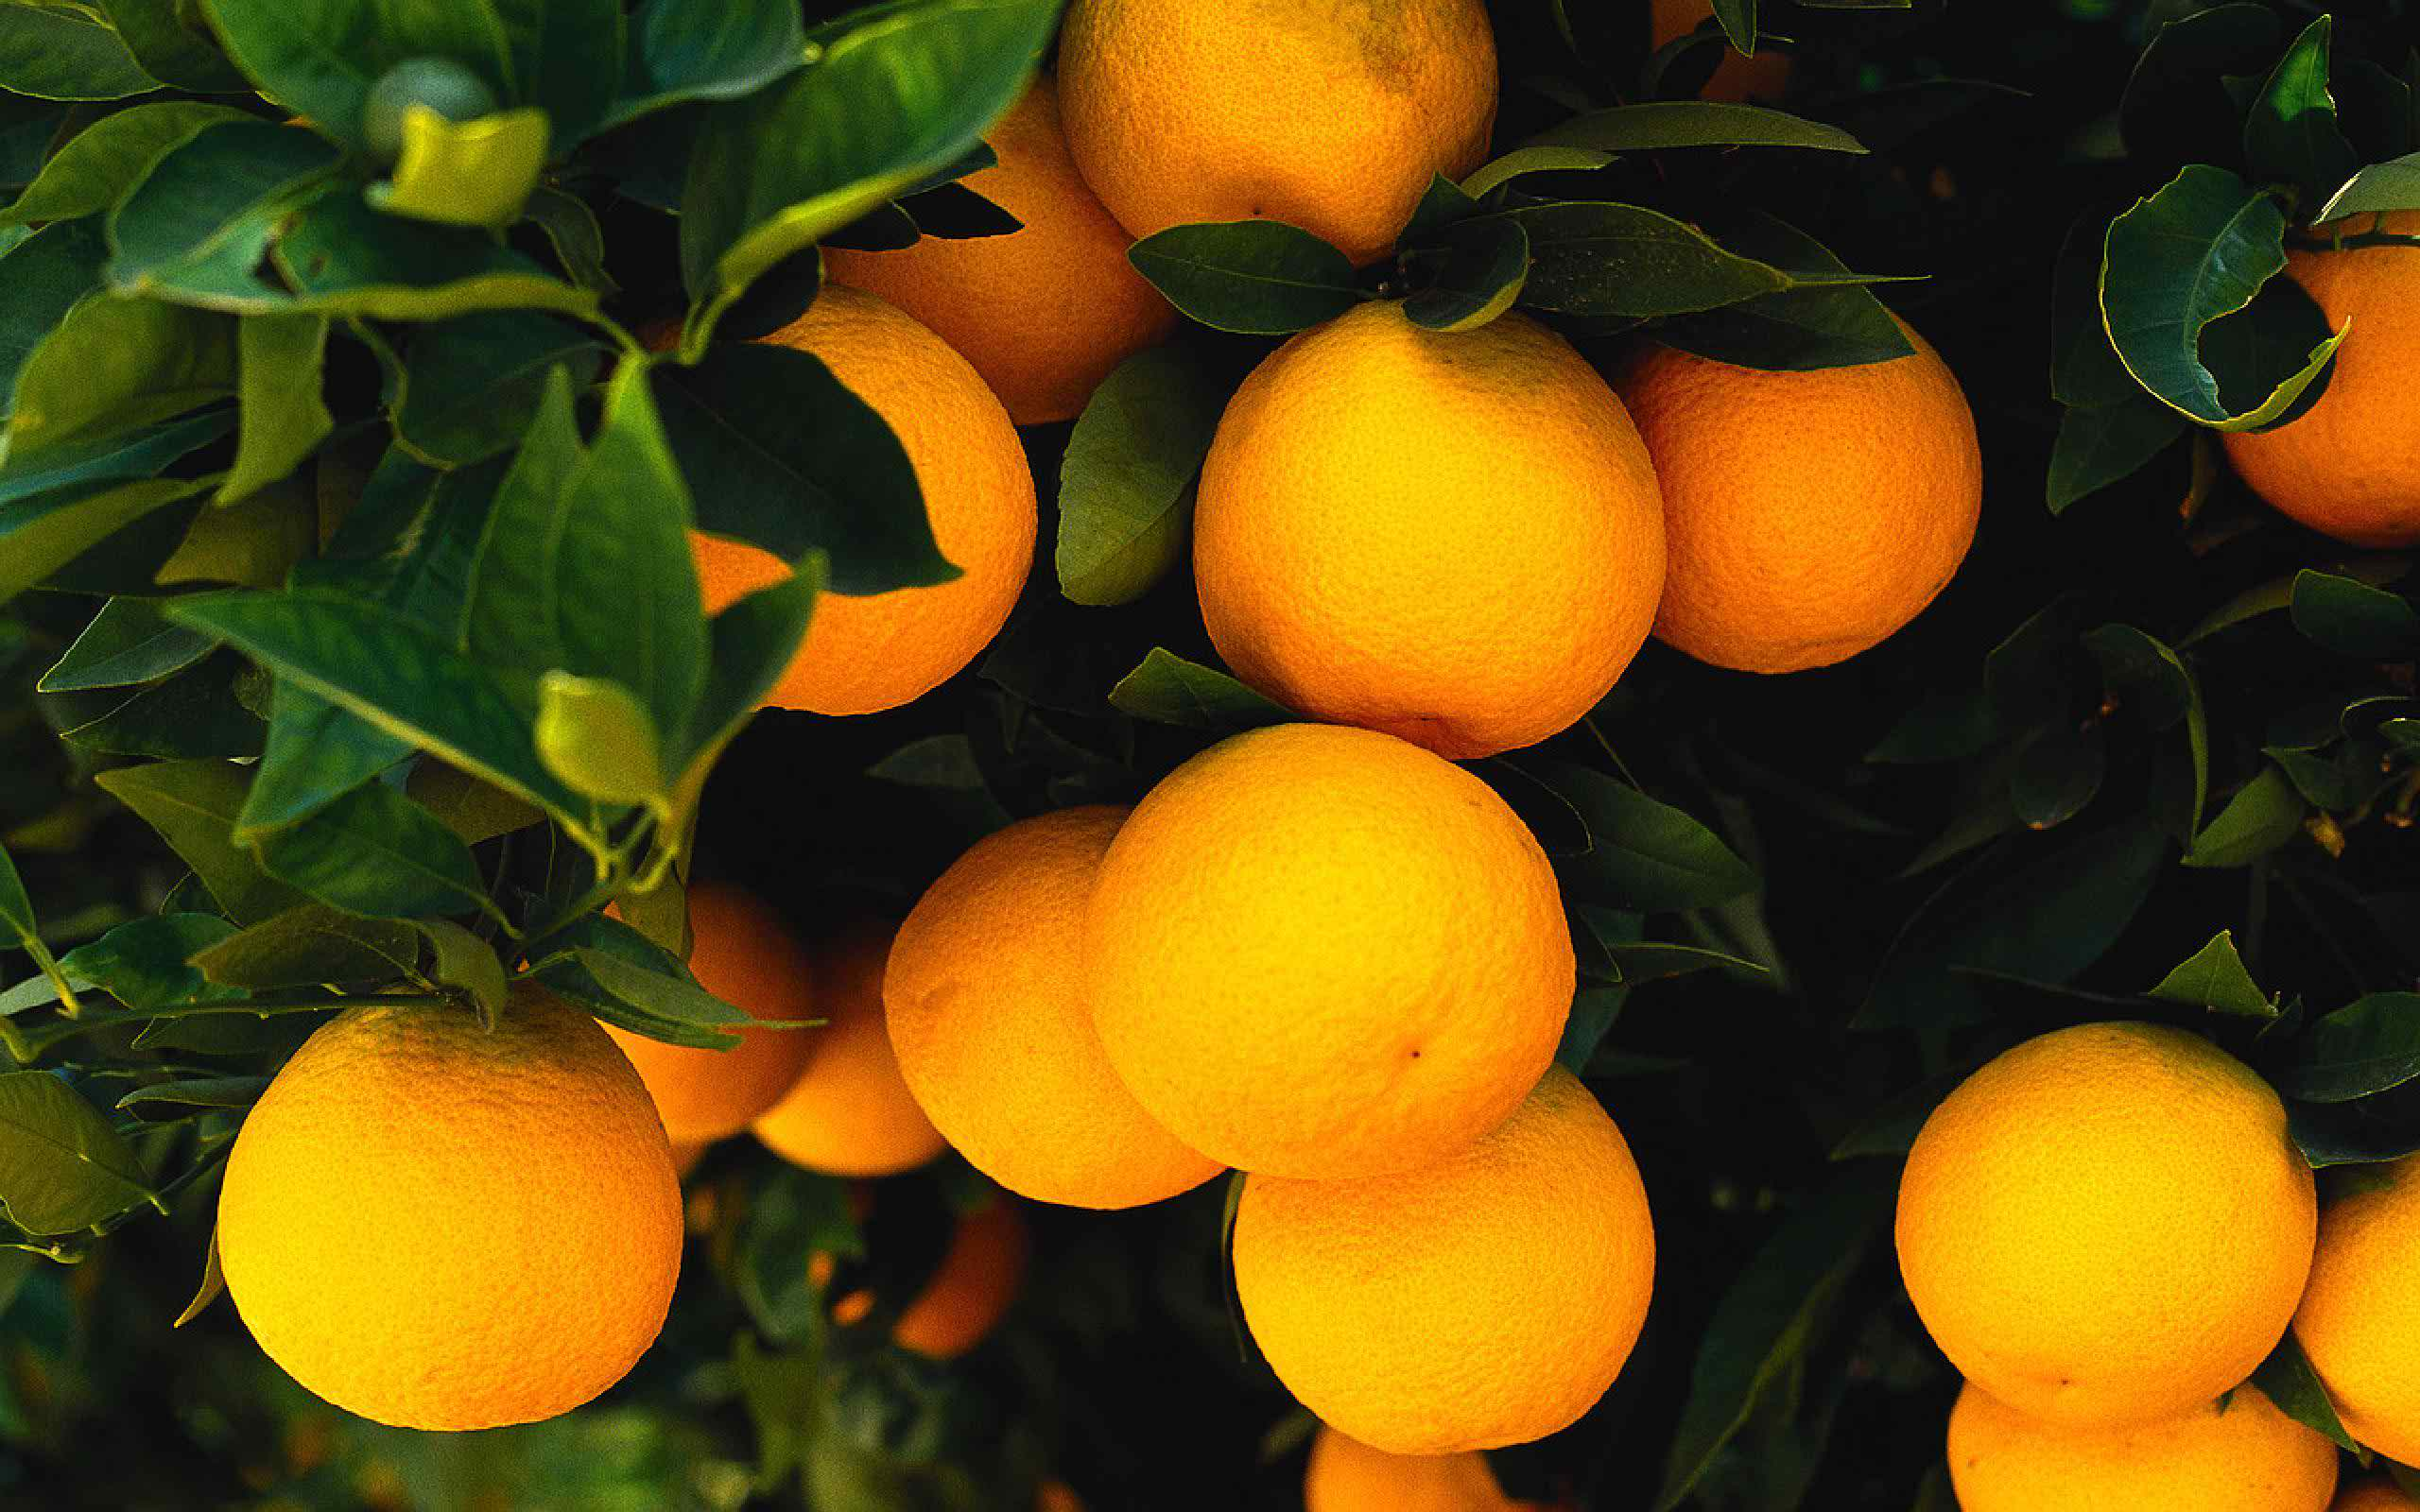 fruits hd wallpapers